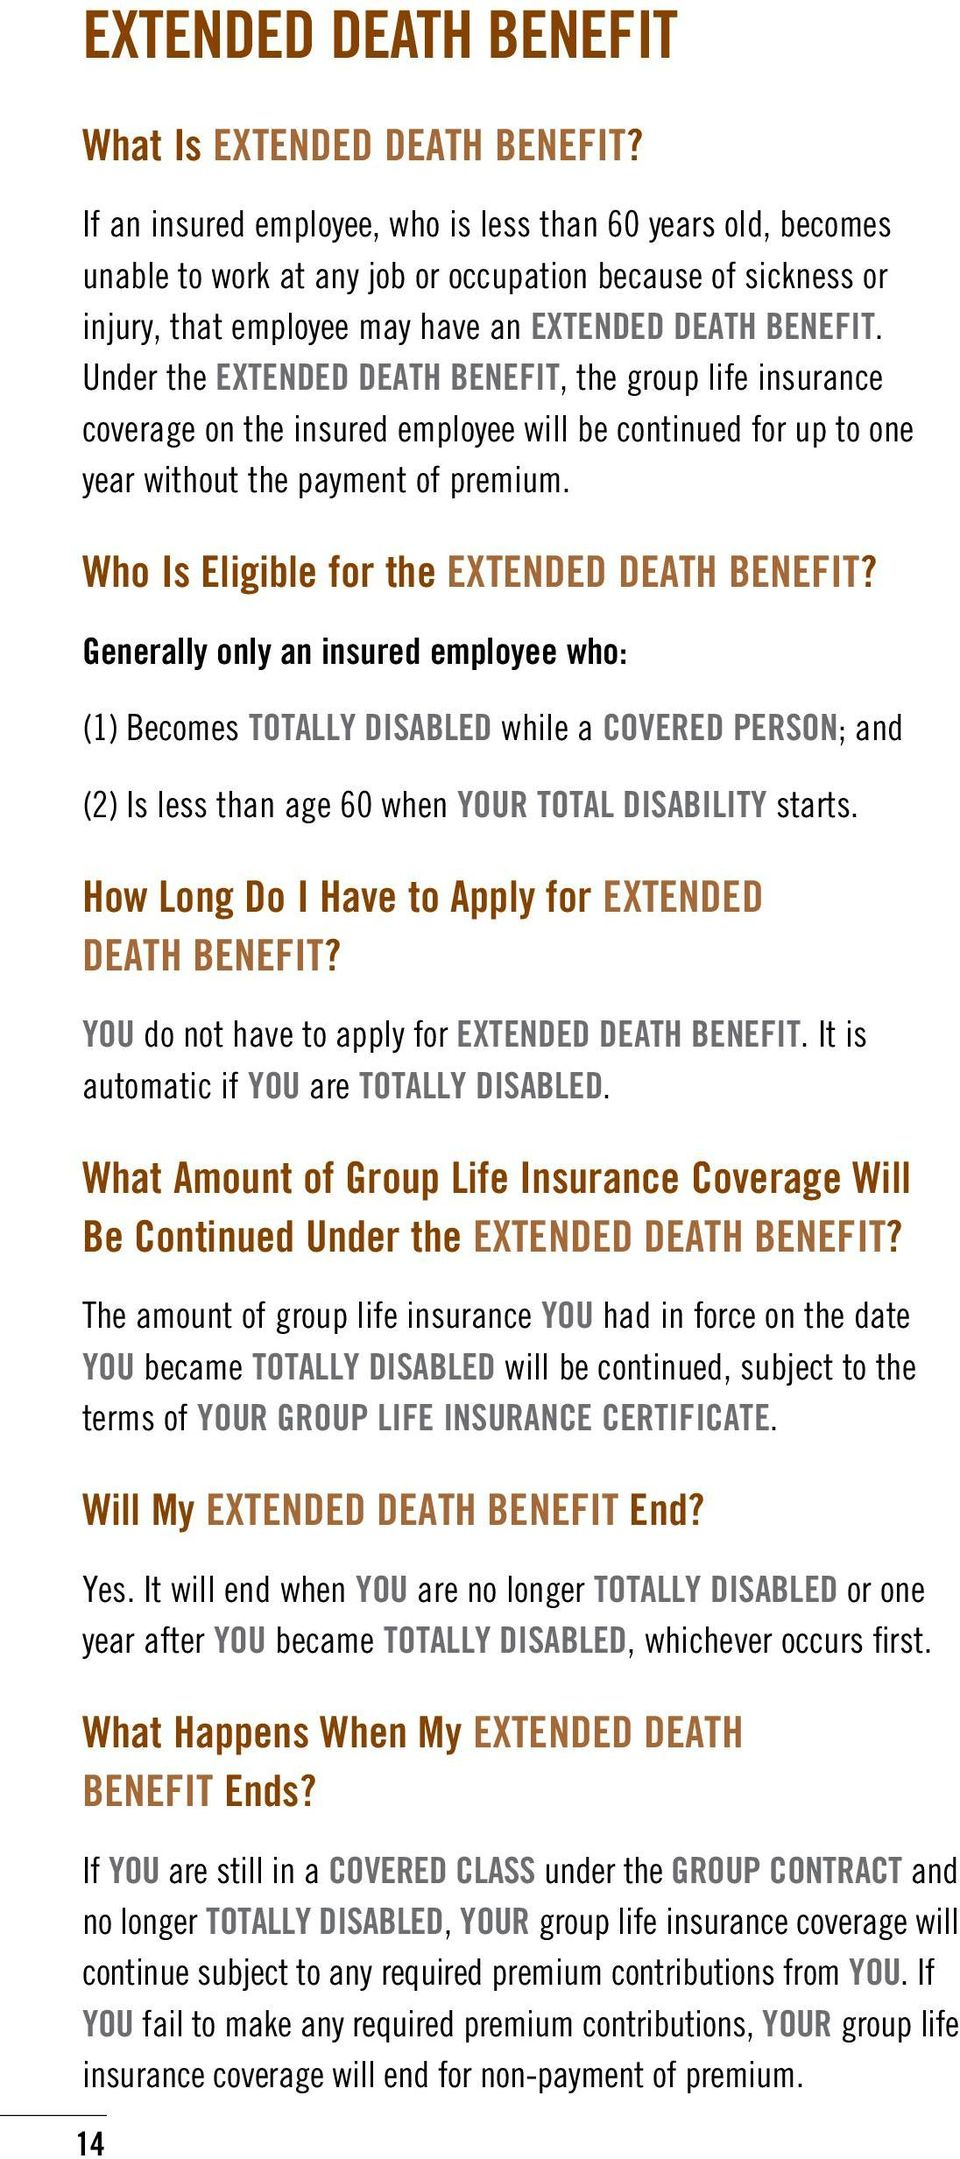 Under the EXTENDED DEATH BENEFIT, the group life insurance coverage on the insured employee will be continued for up to one year without the payment of premium.